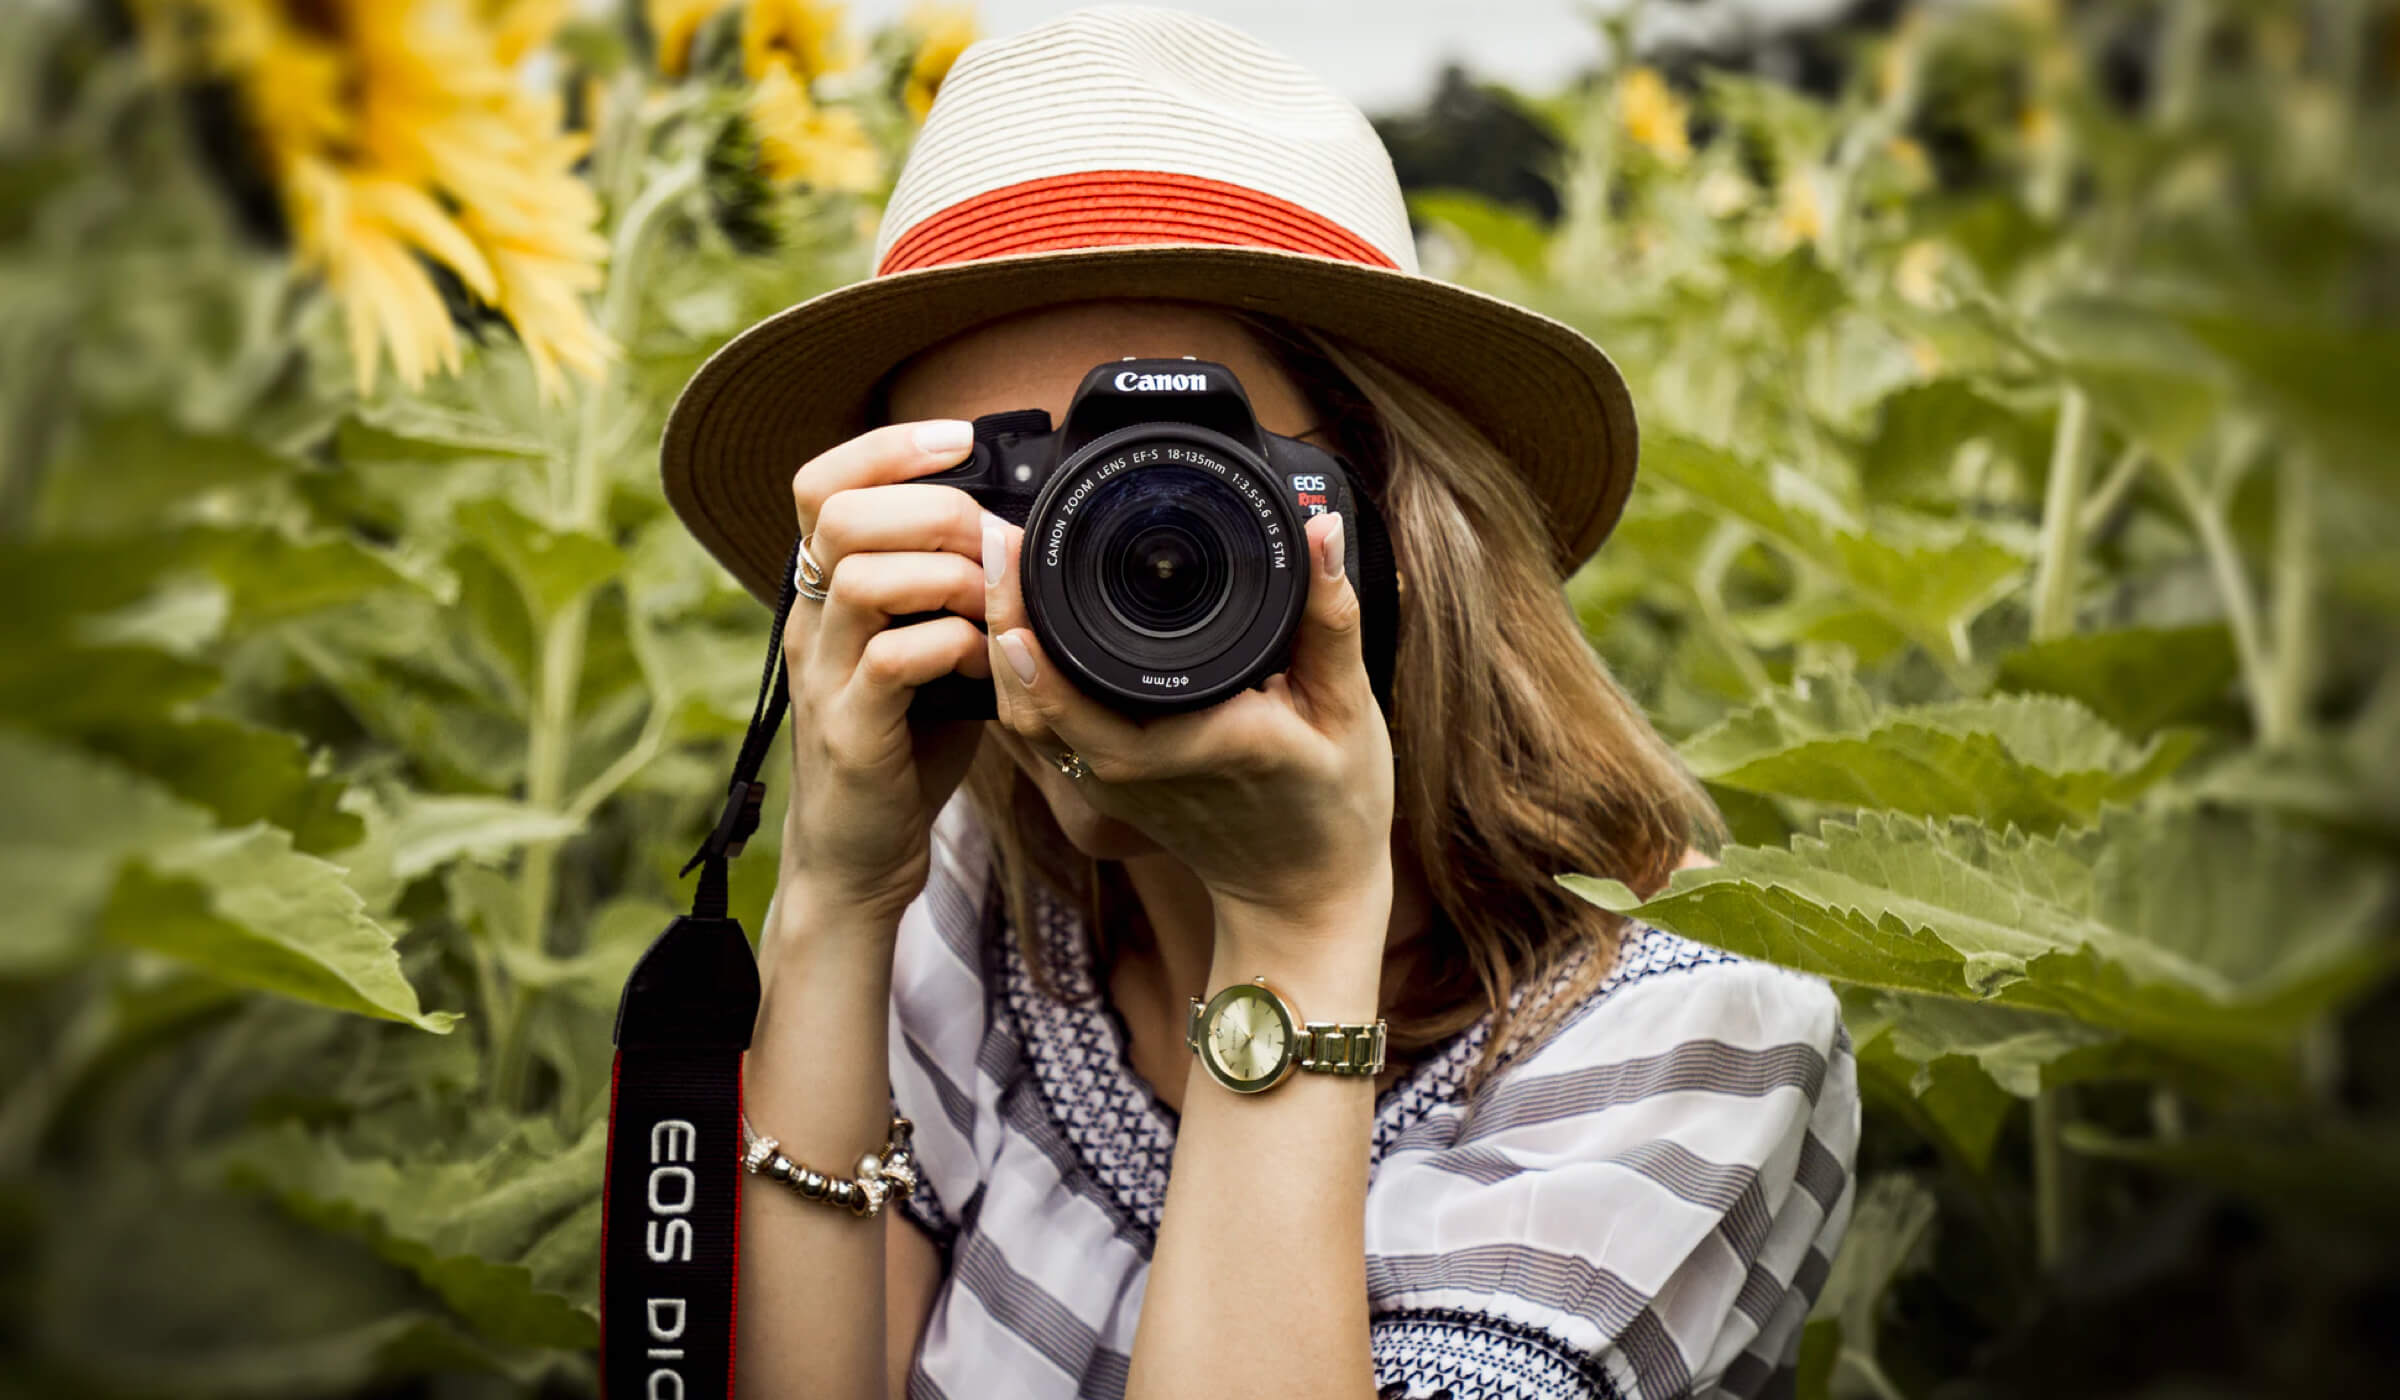 Find and Book Photographers on Venopi